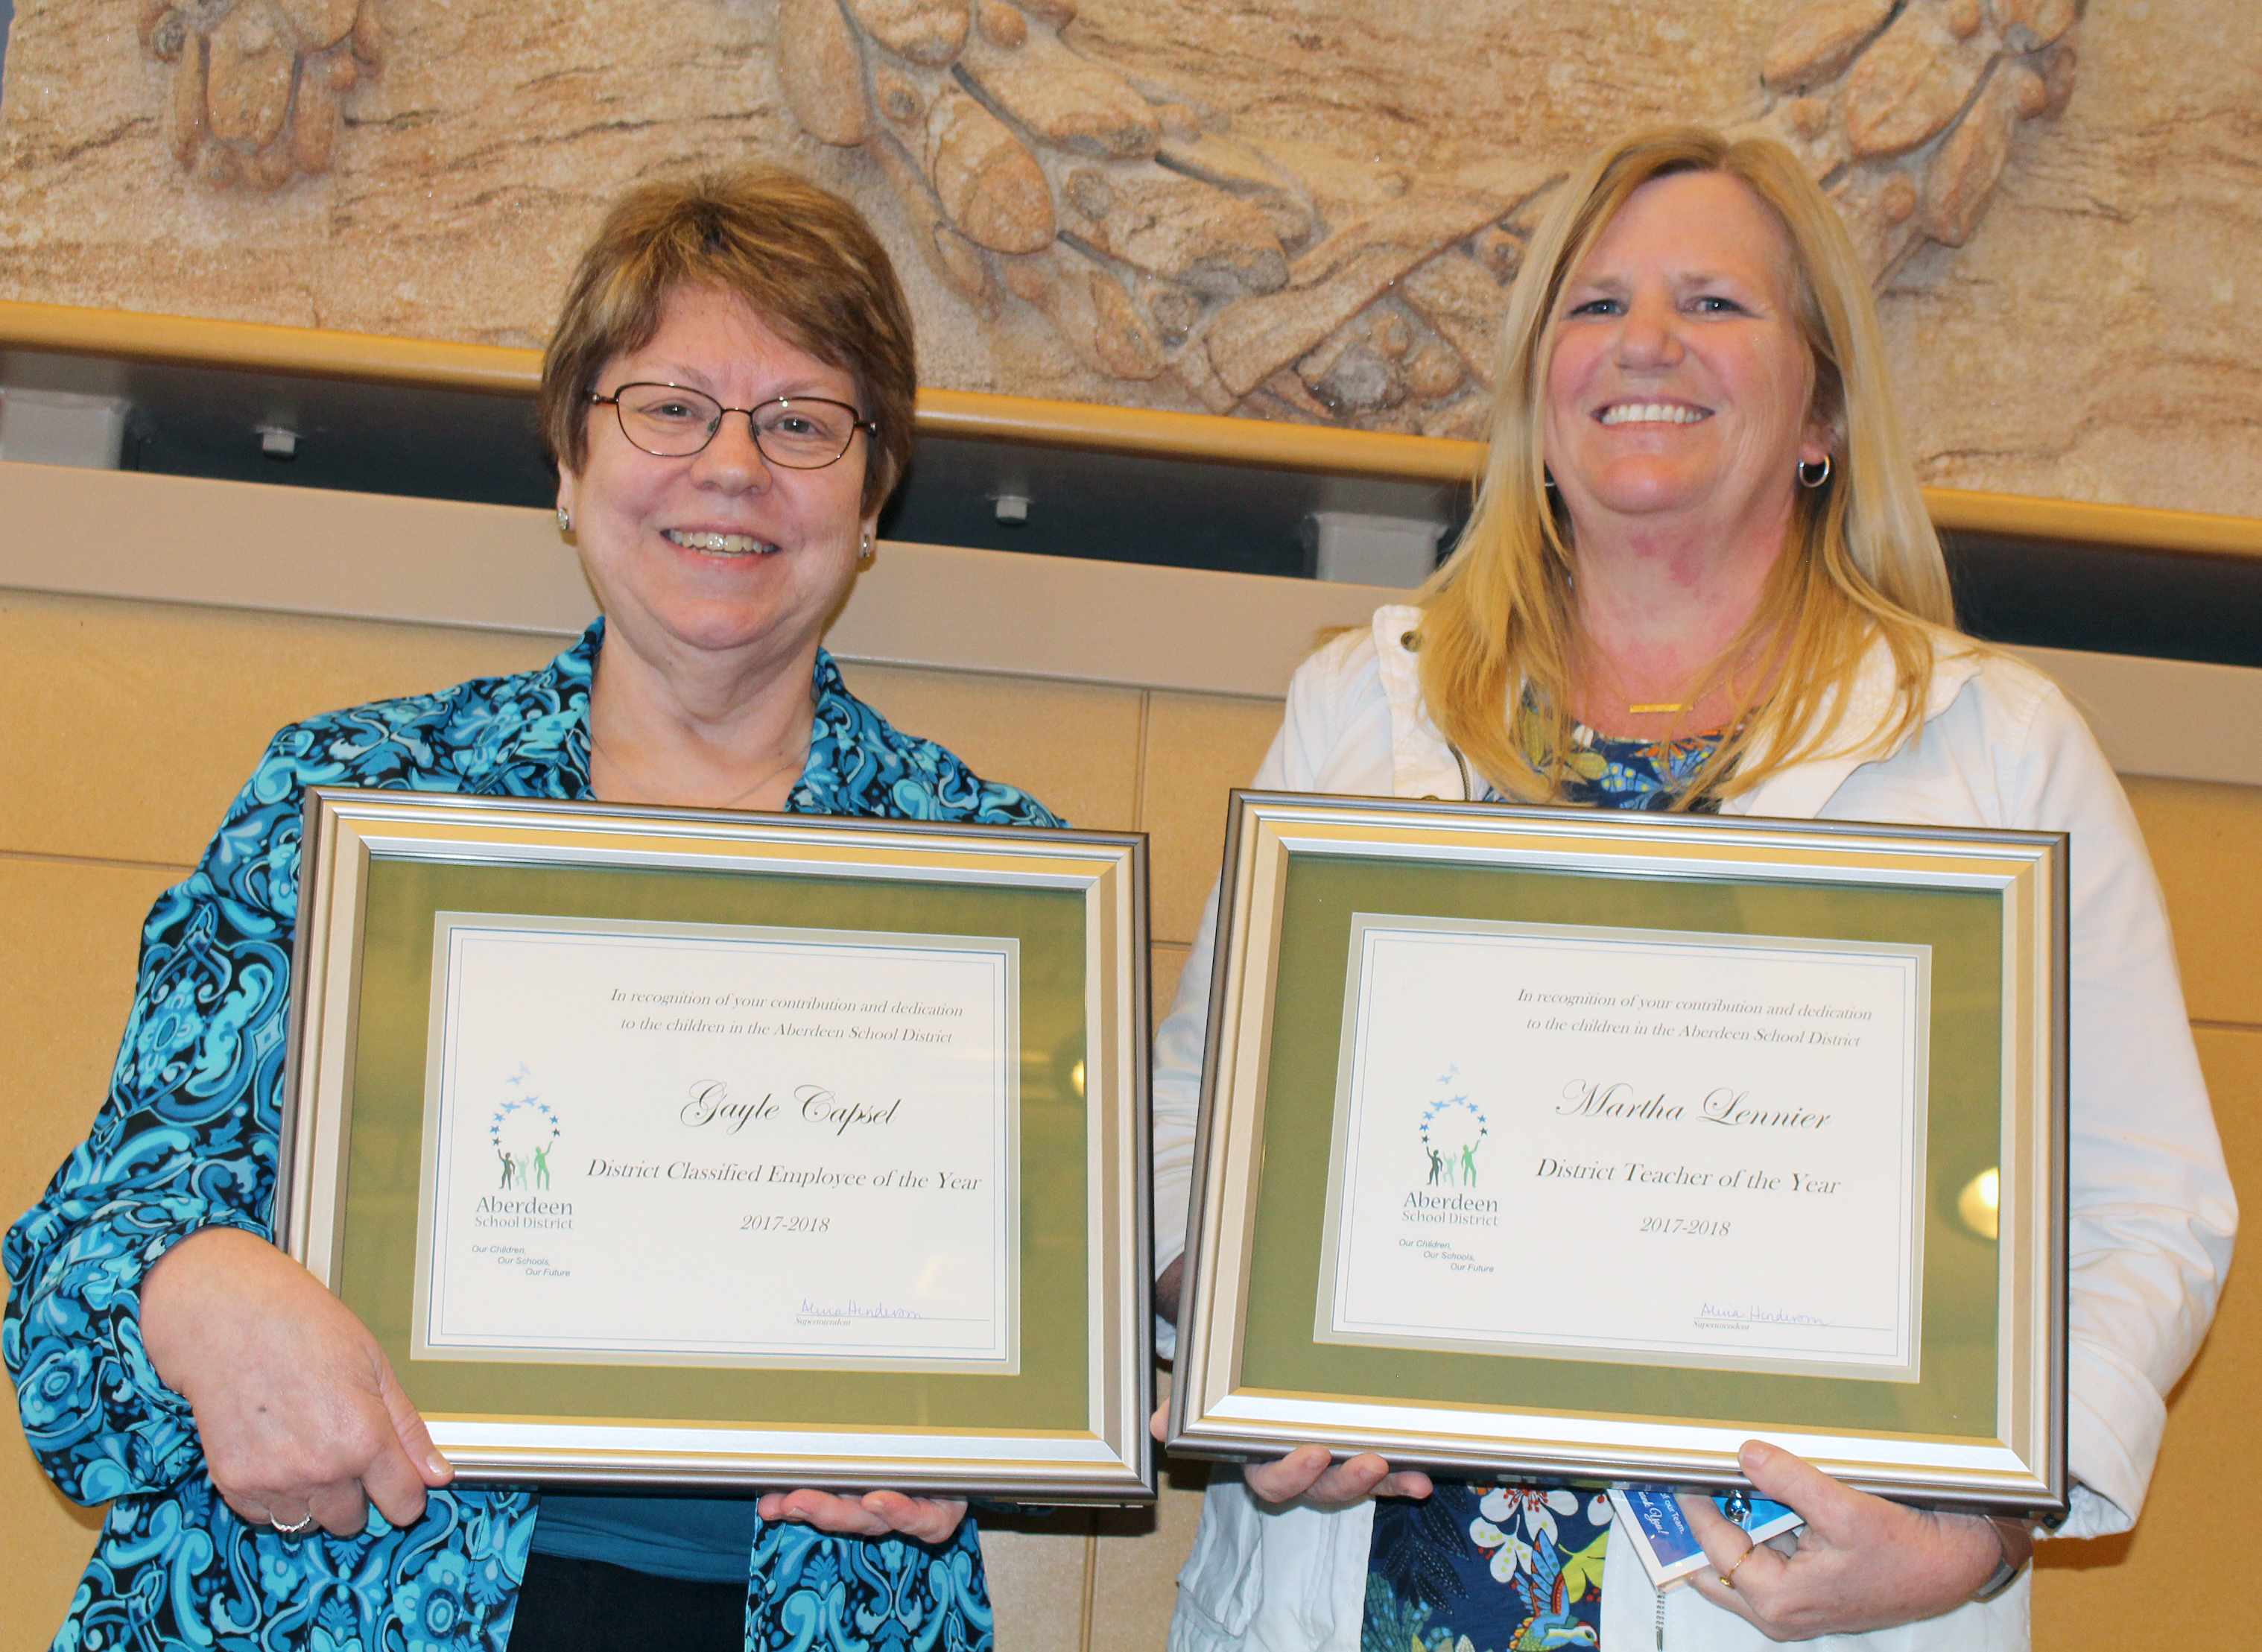 Congratulations to Our District's Employees of the Year